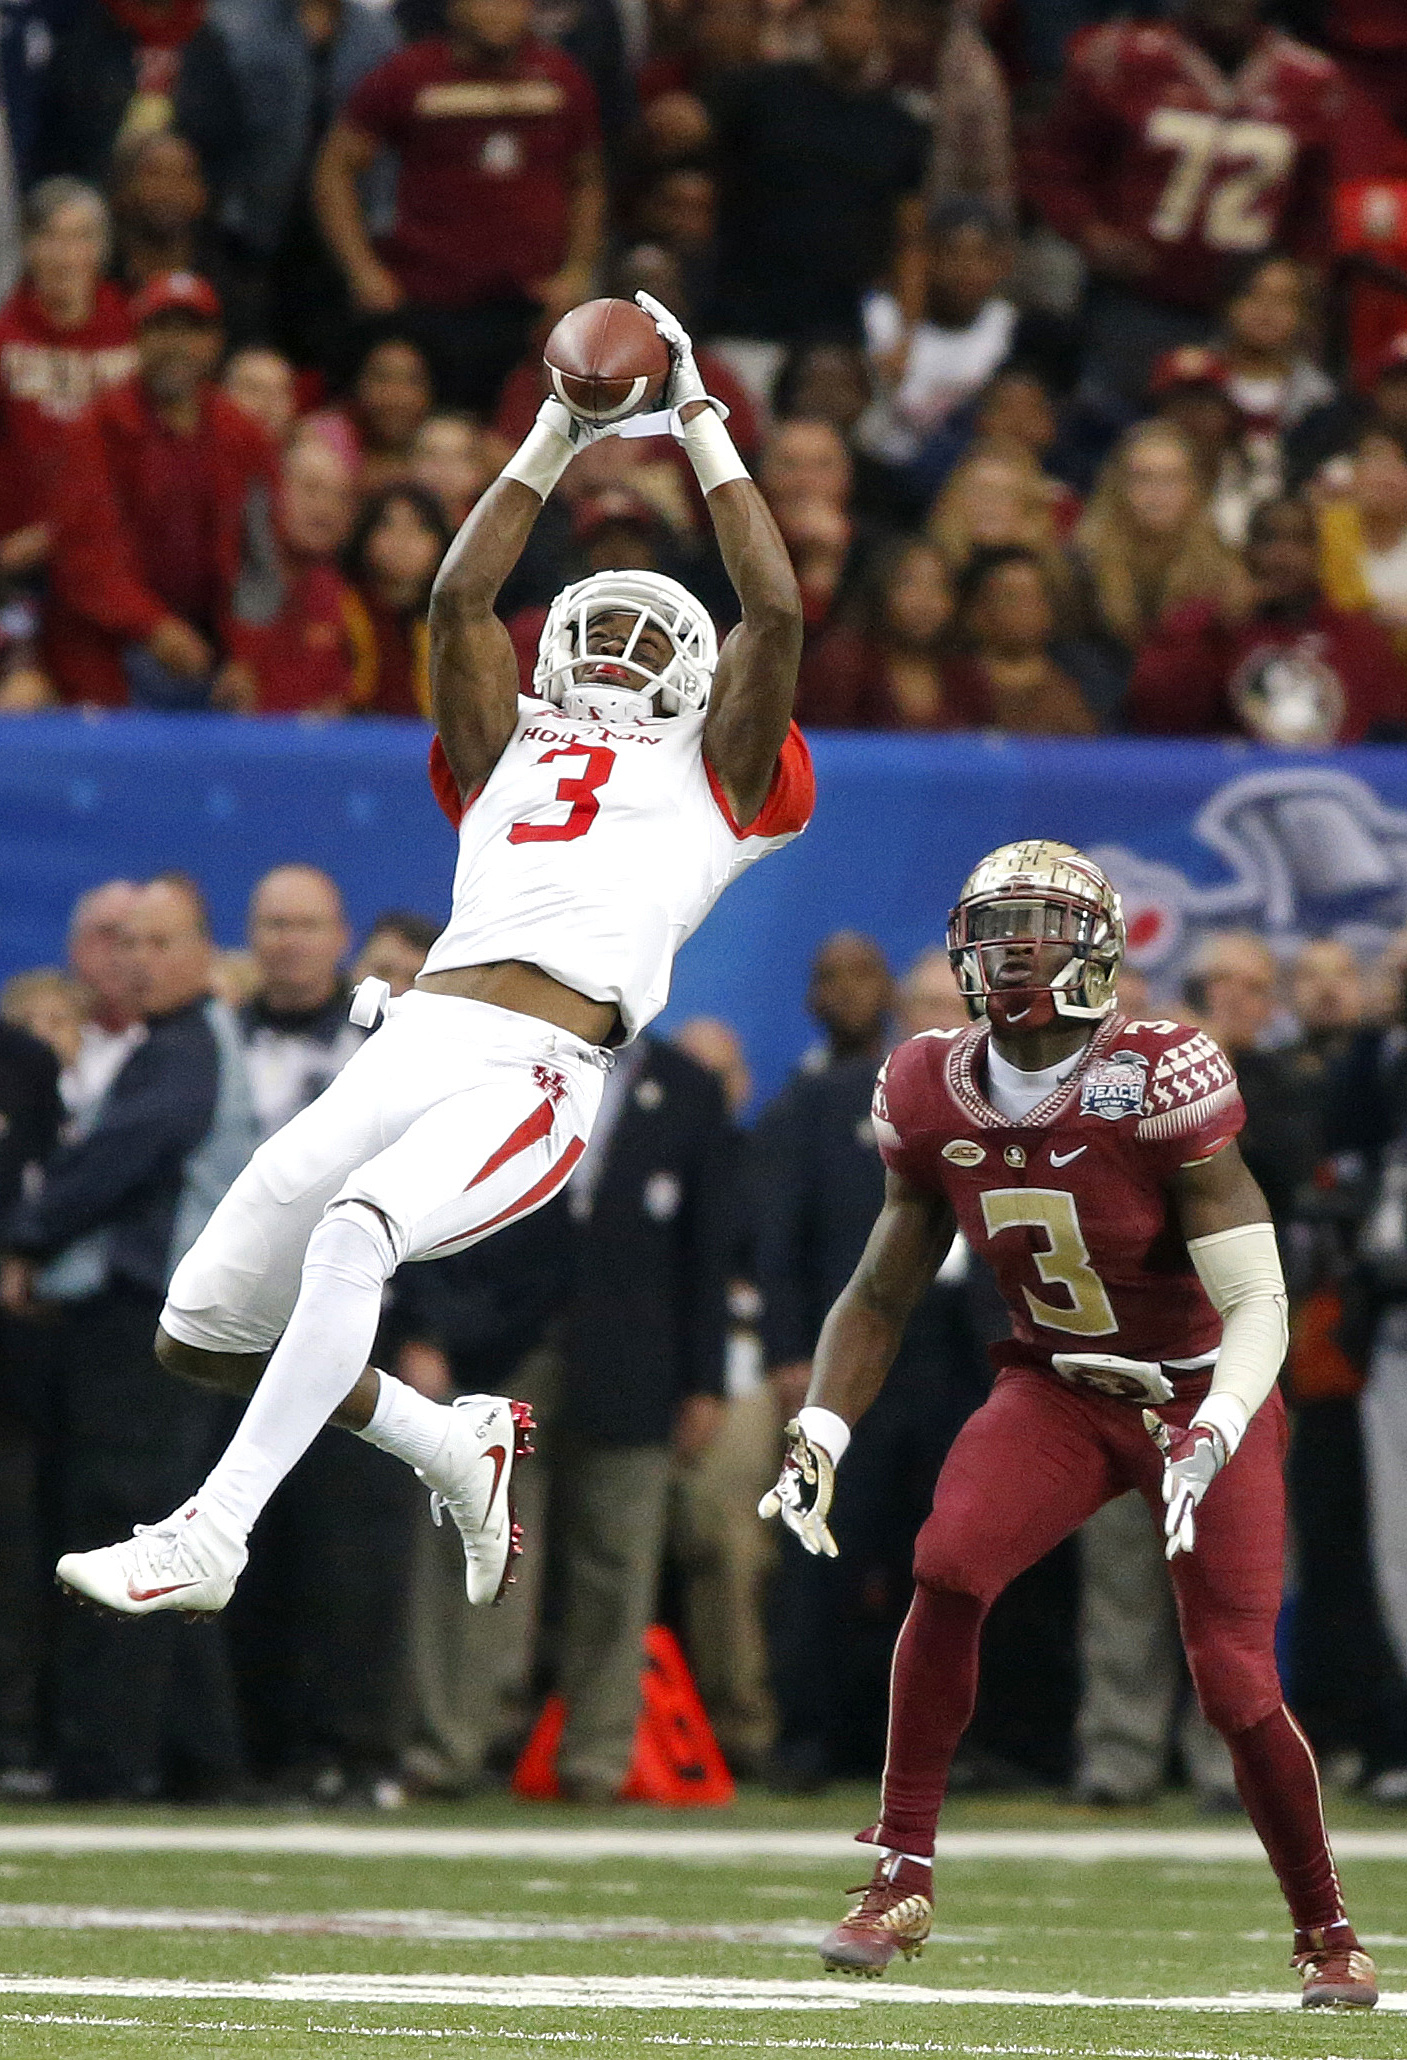 Because I'm sick of pictures of wide receivers already.